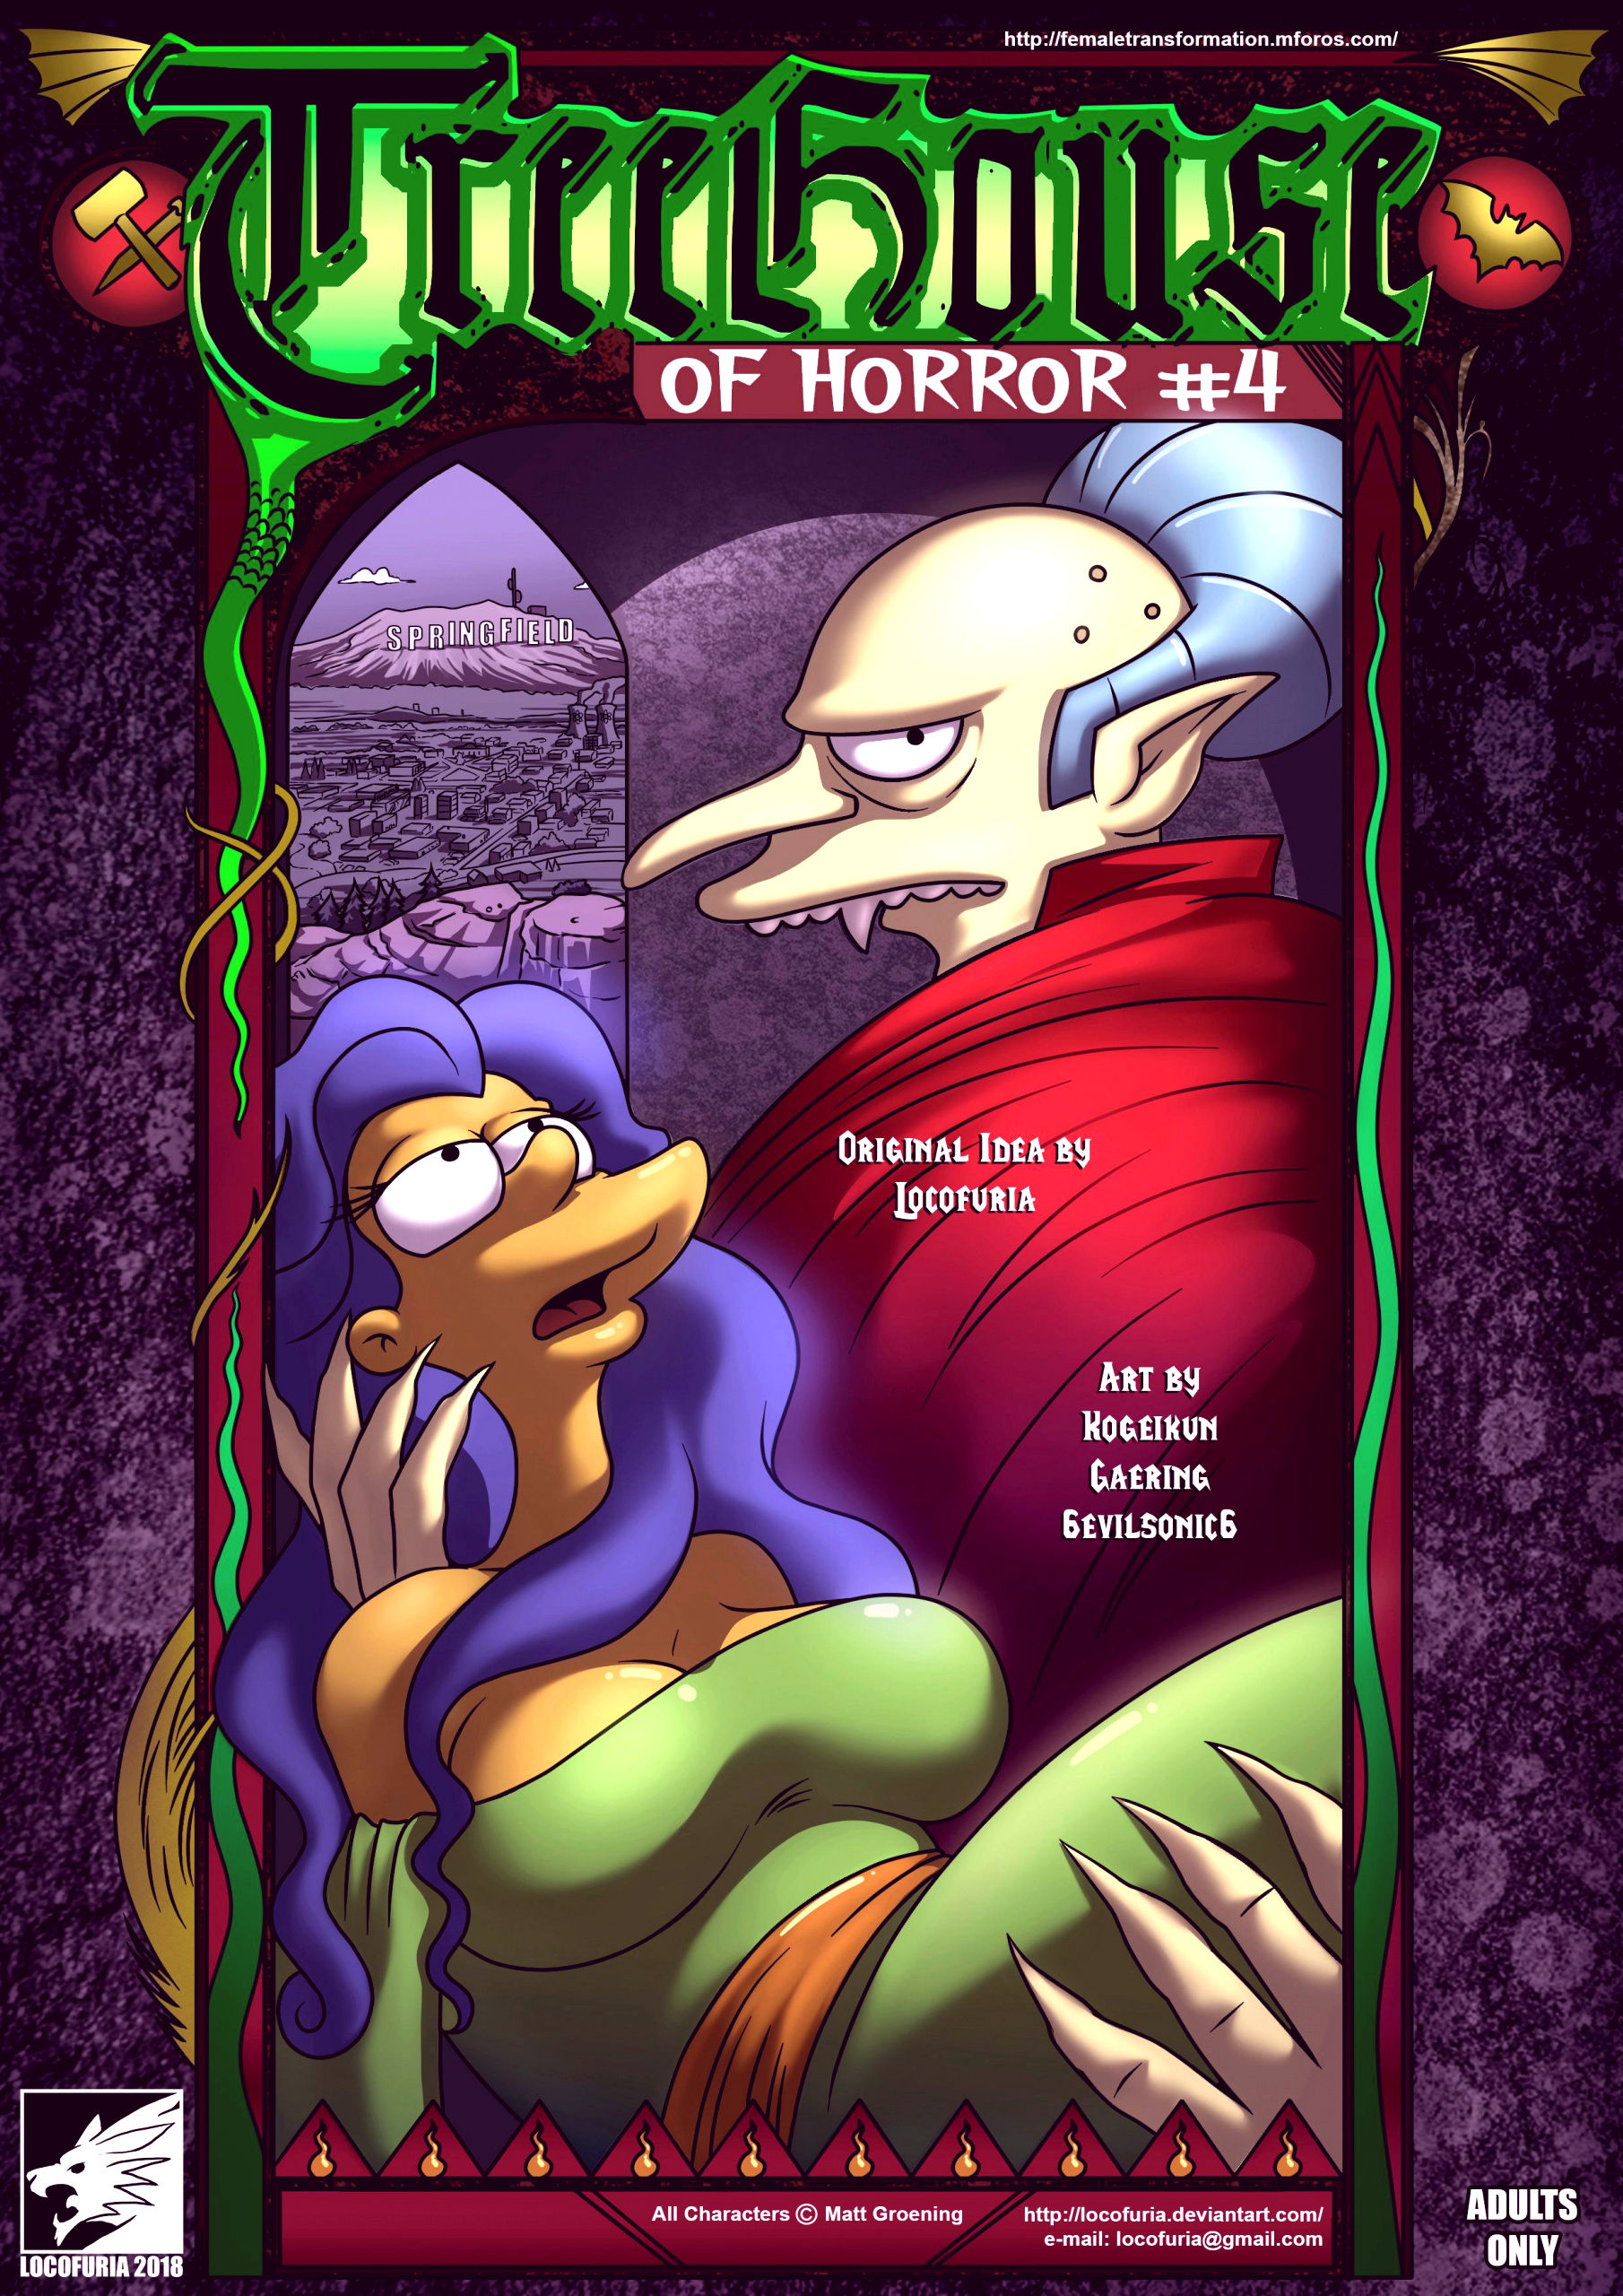 Treehouse of horror 4 porn comic picture 1